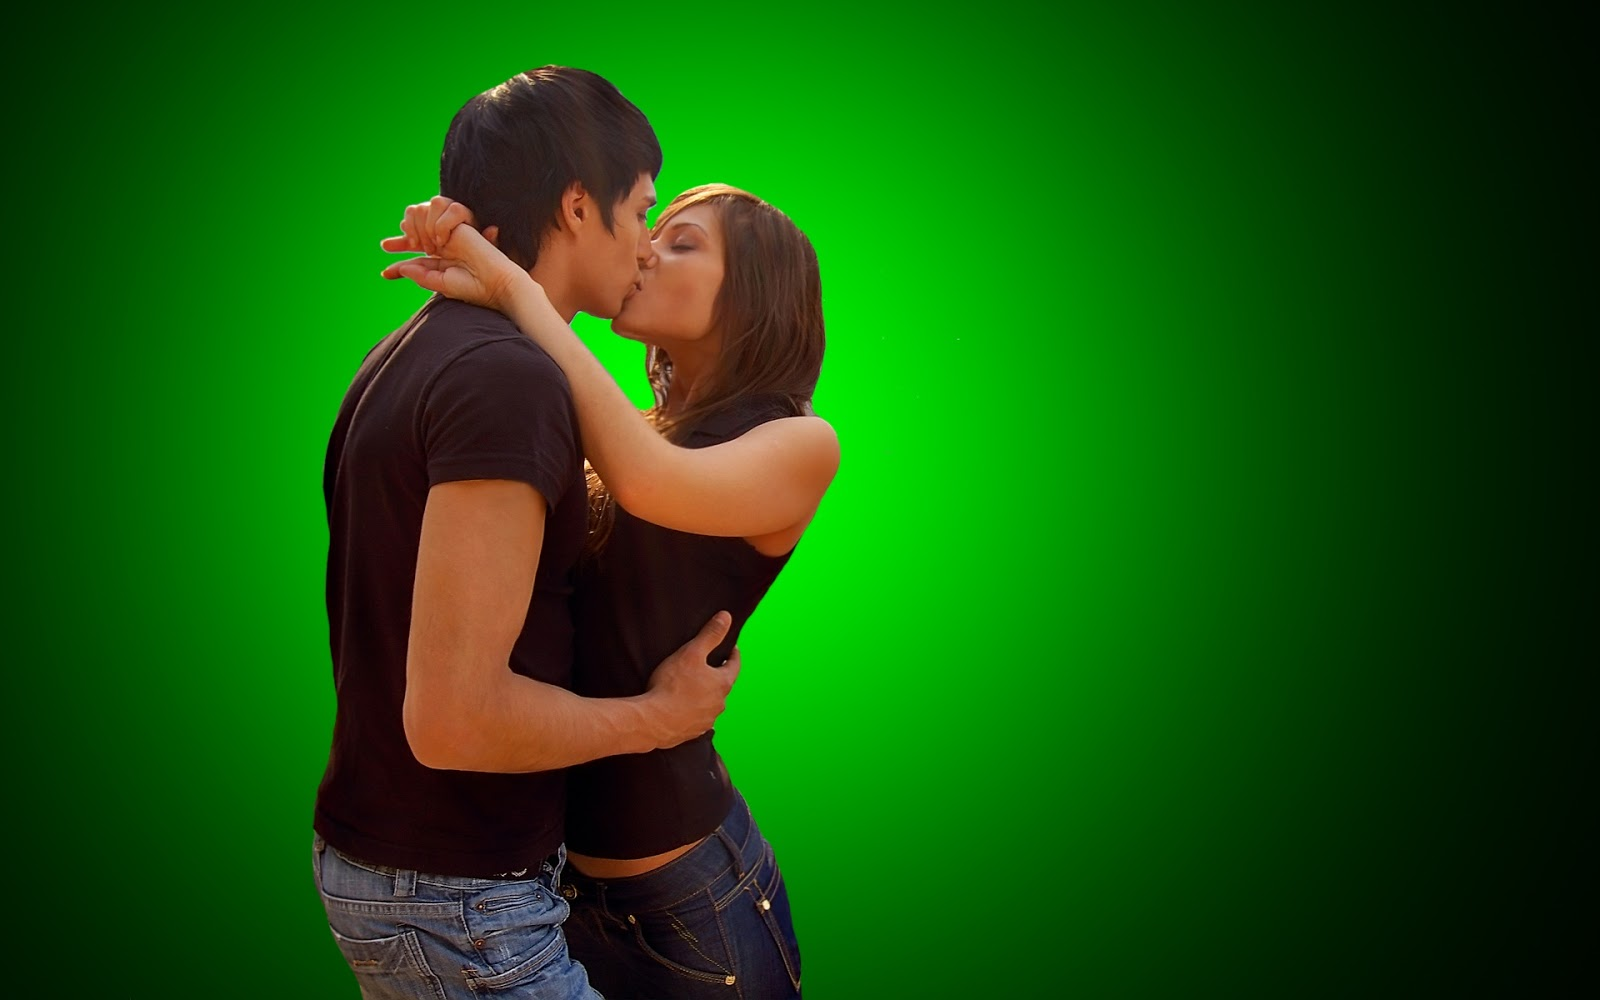 Romantic Couple Lip Kiss HD Images